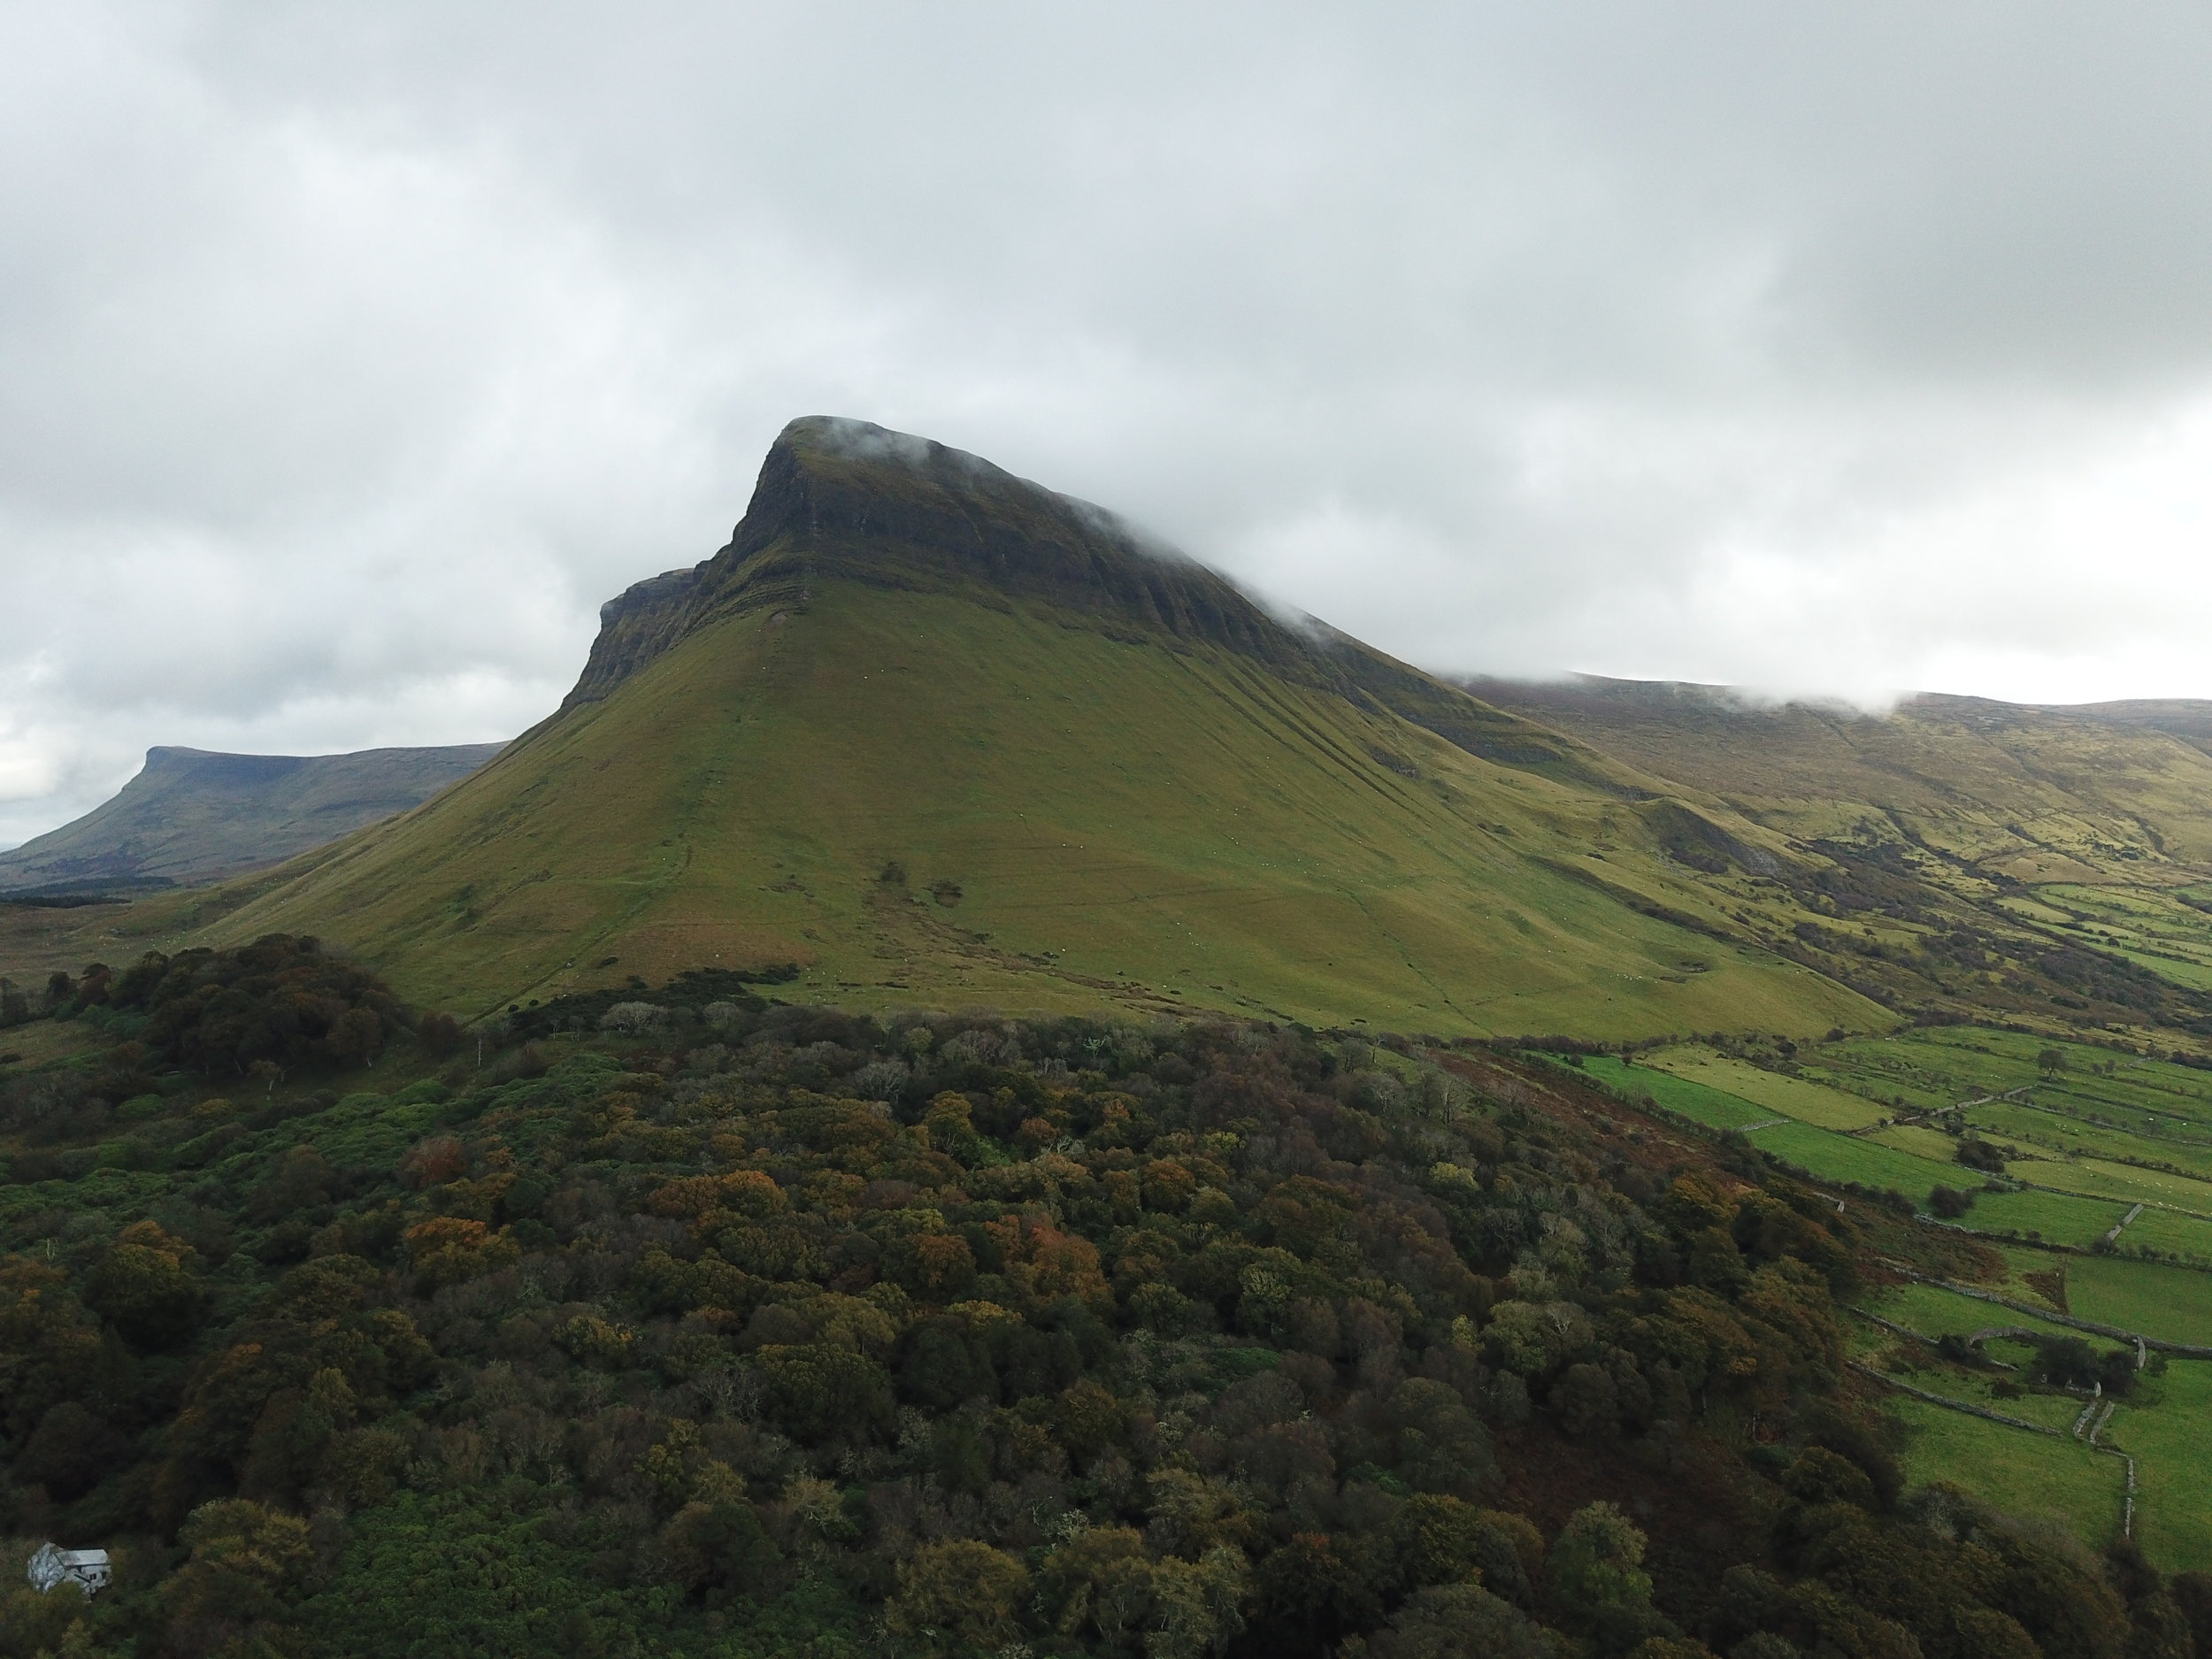 The Benbulben is a sight to see in Sligo, Ireland.